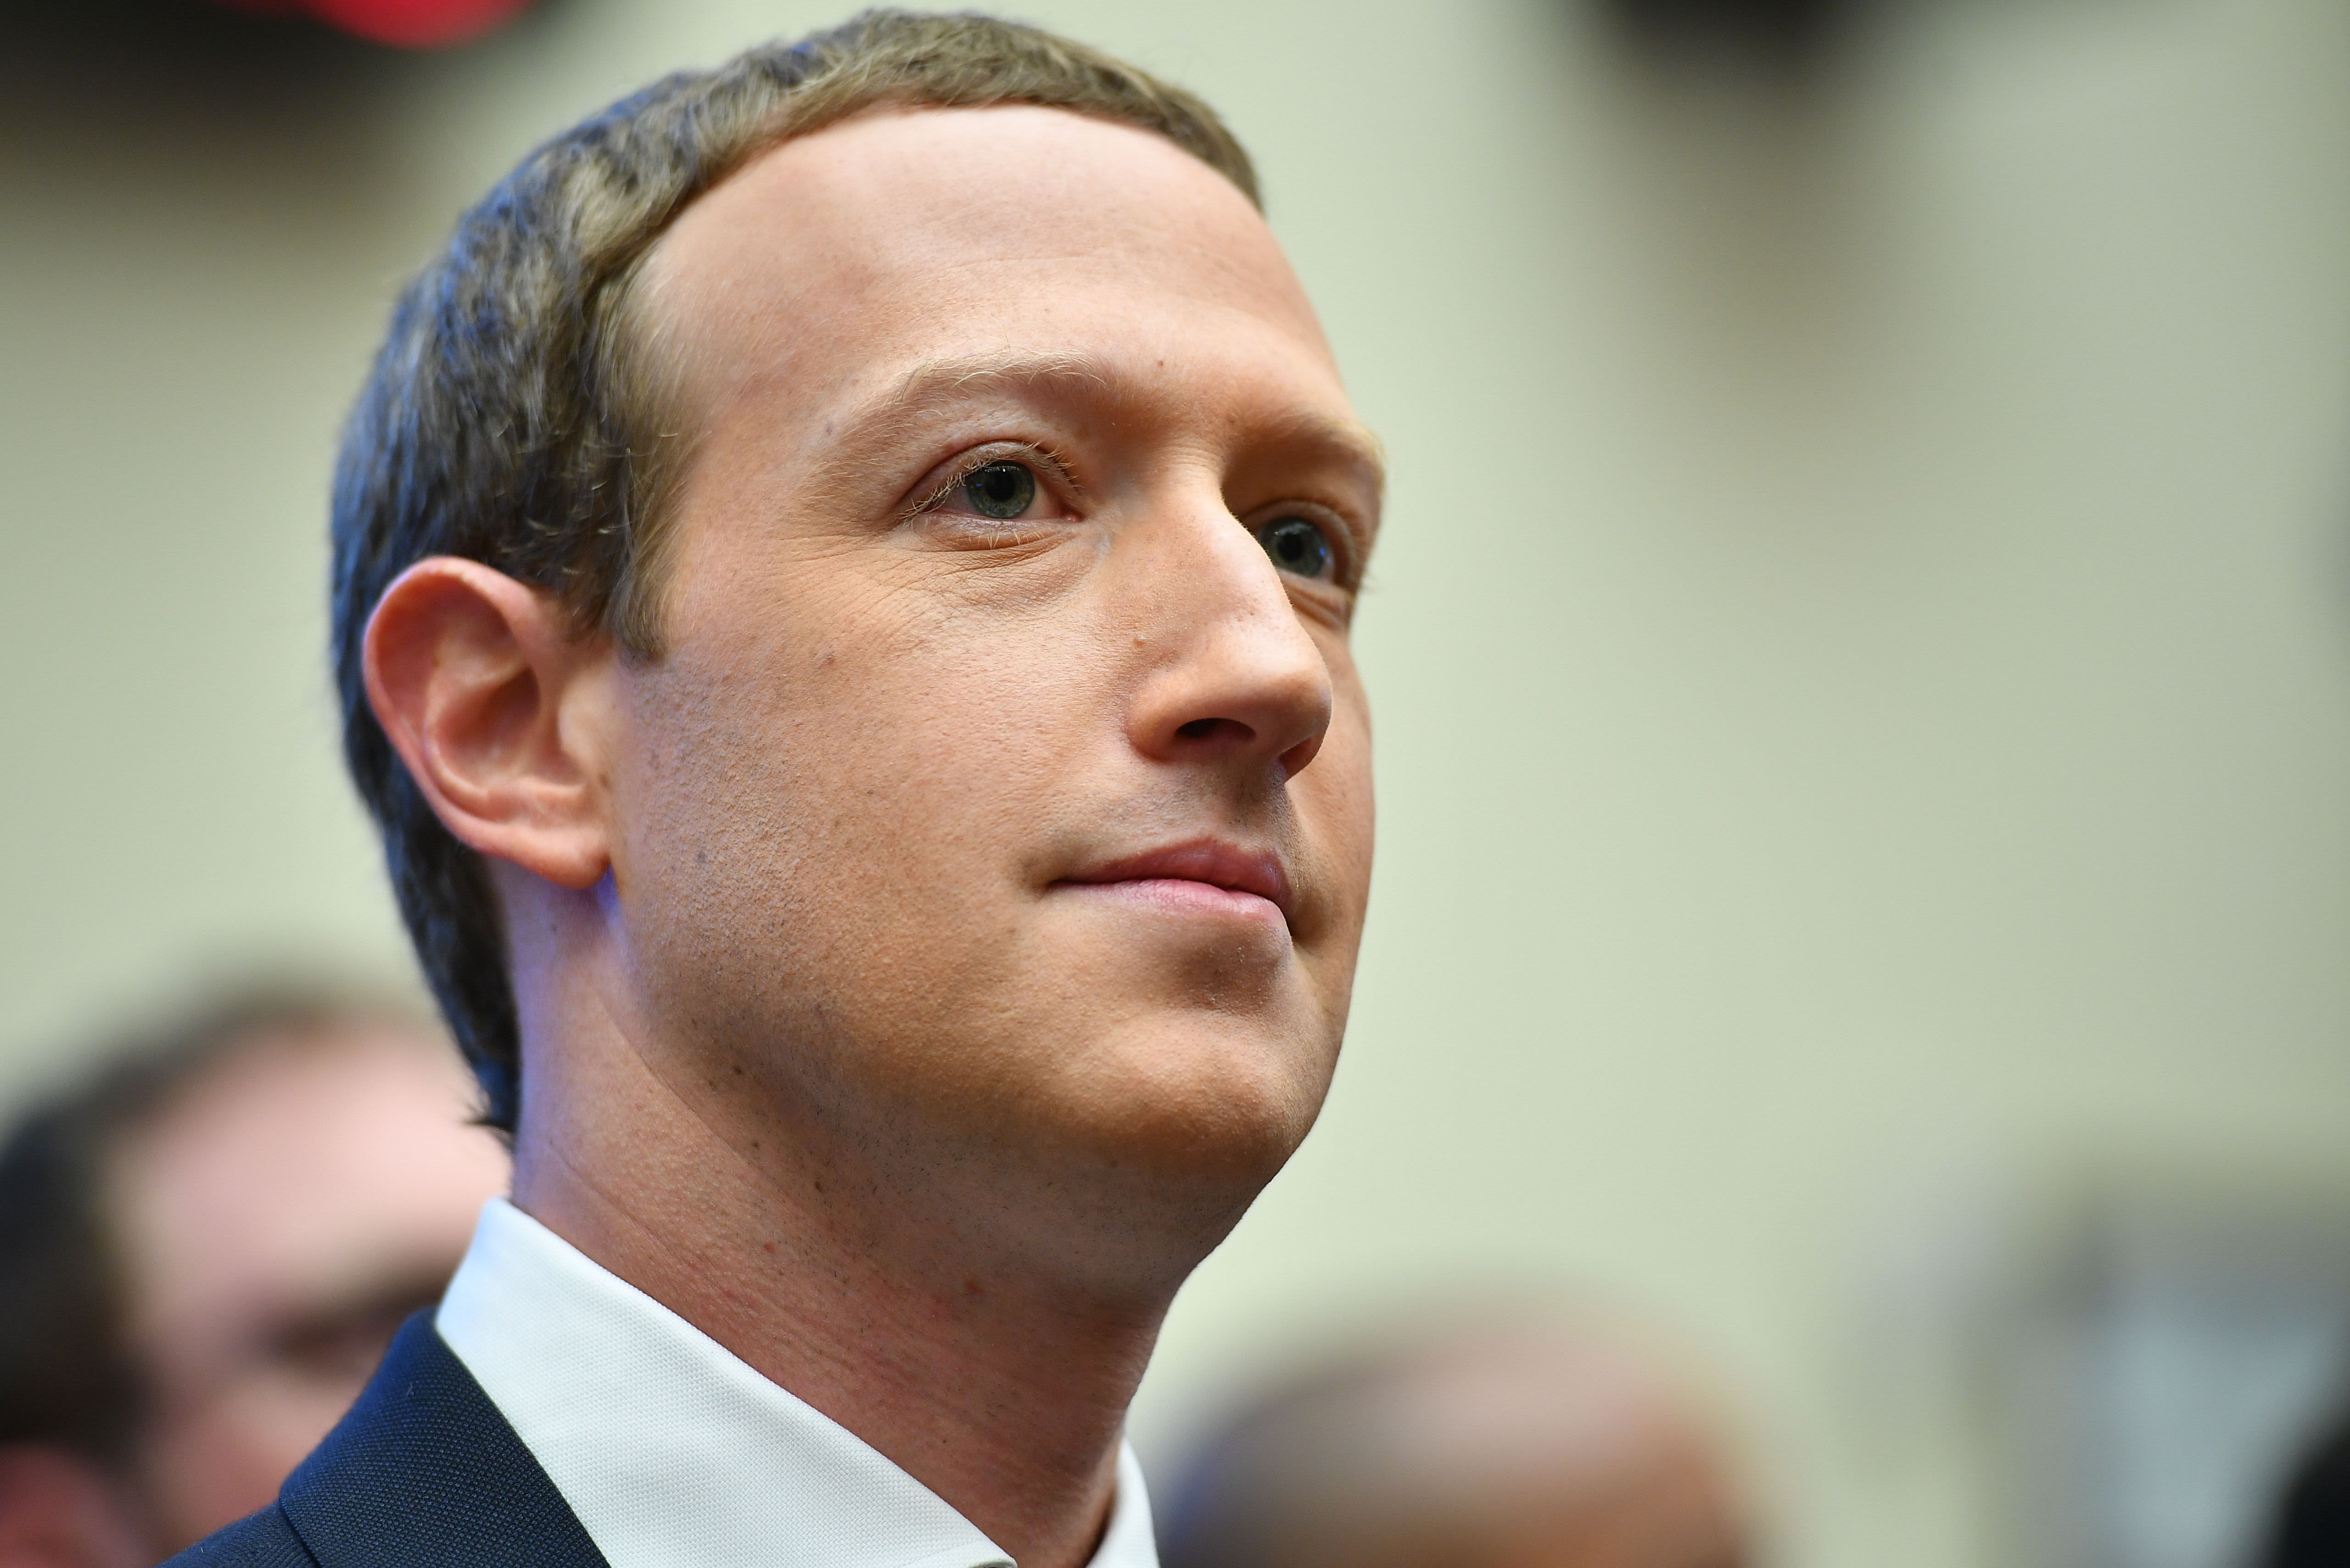 Oversight board condemns Facebook for withholding information on how it moderates VIPs